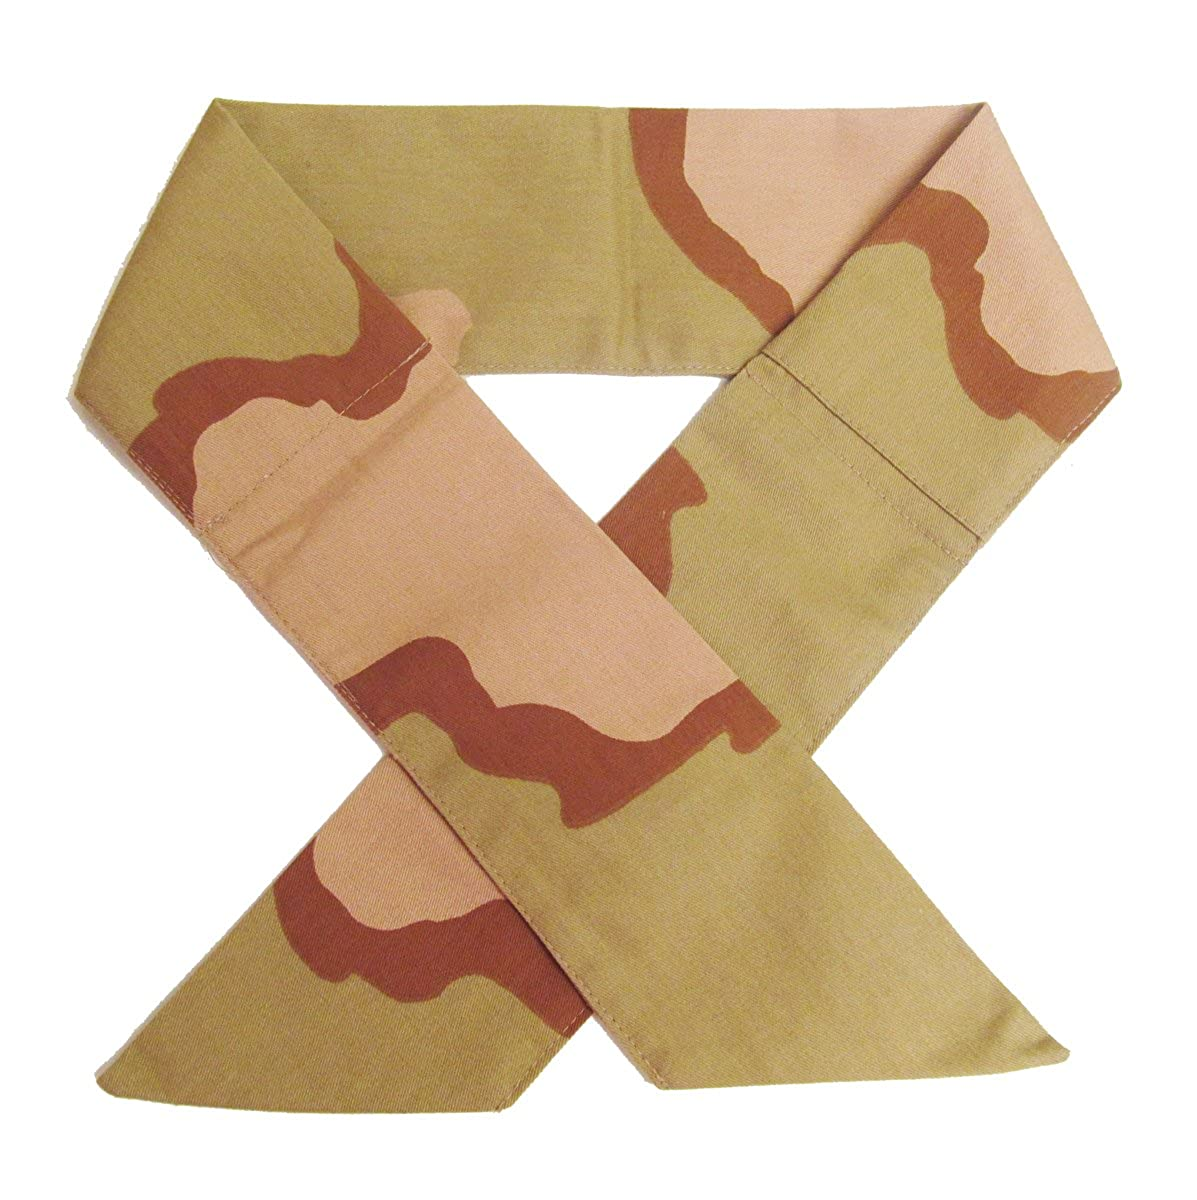 Deluxe Phase Change Neck Cooler - Desert Camouflage - Extra Wide - More Cooling!